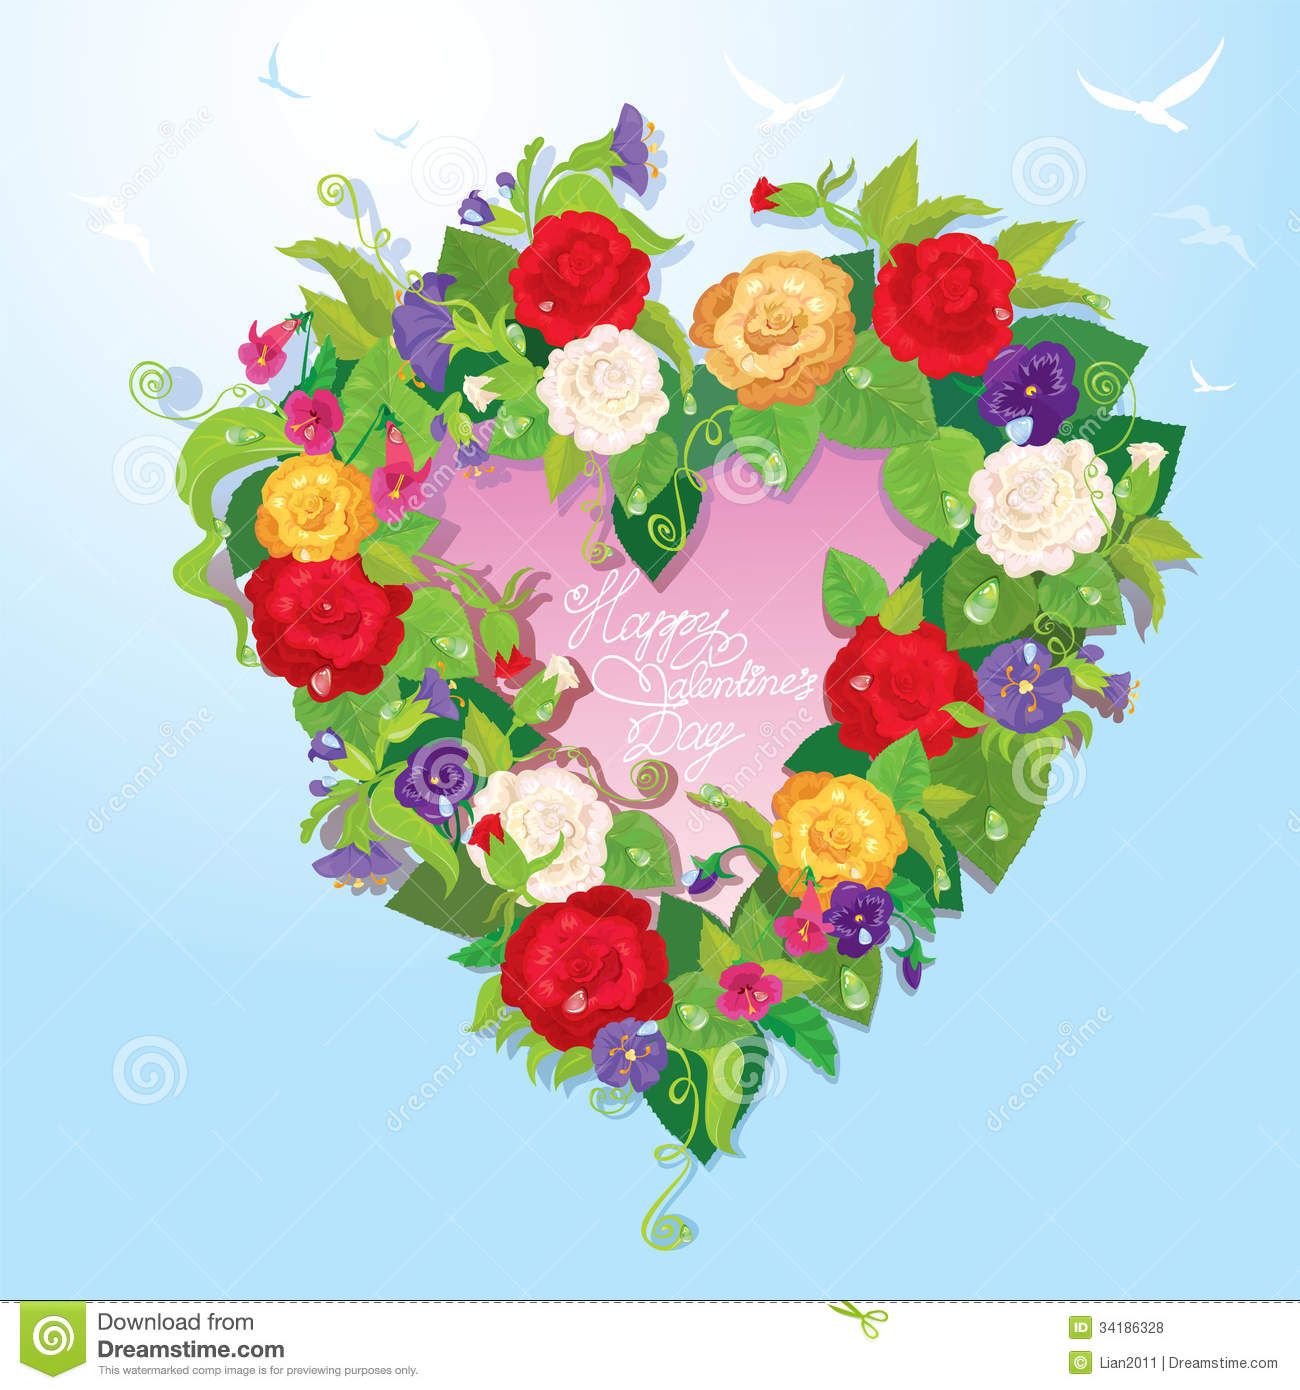 Heart shape is made of beautiful flowers roses stock vector download heart shape is made of beautiful flowers roses stock vector illustration of izmirmasajfo